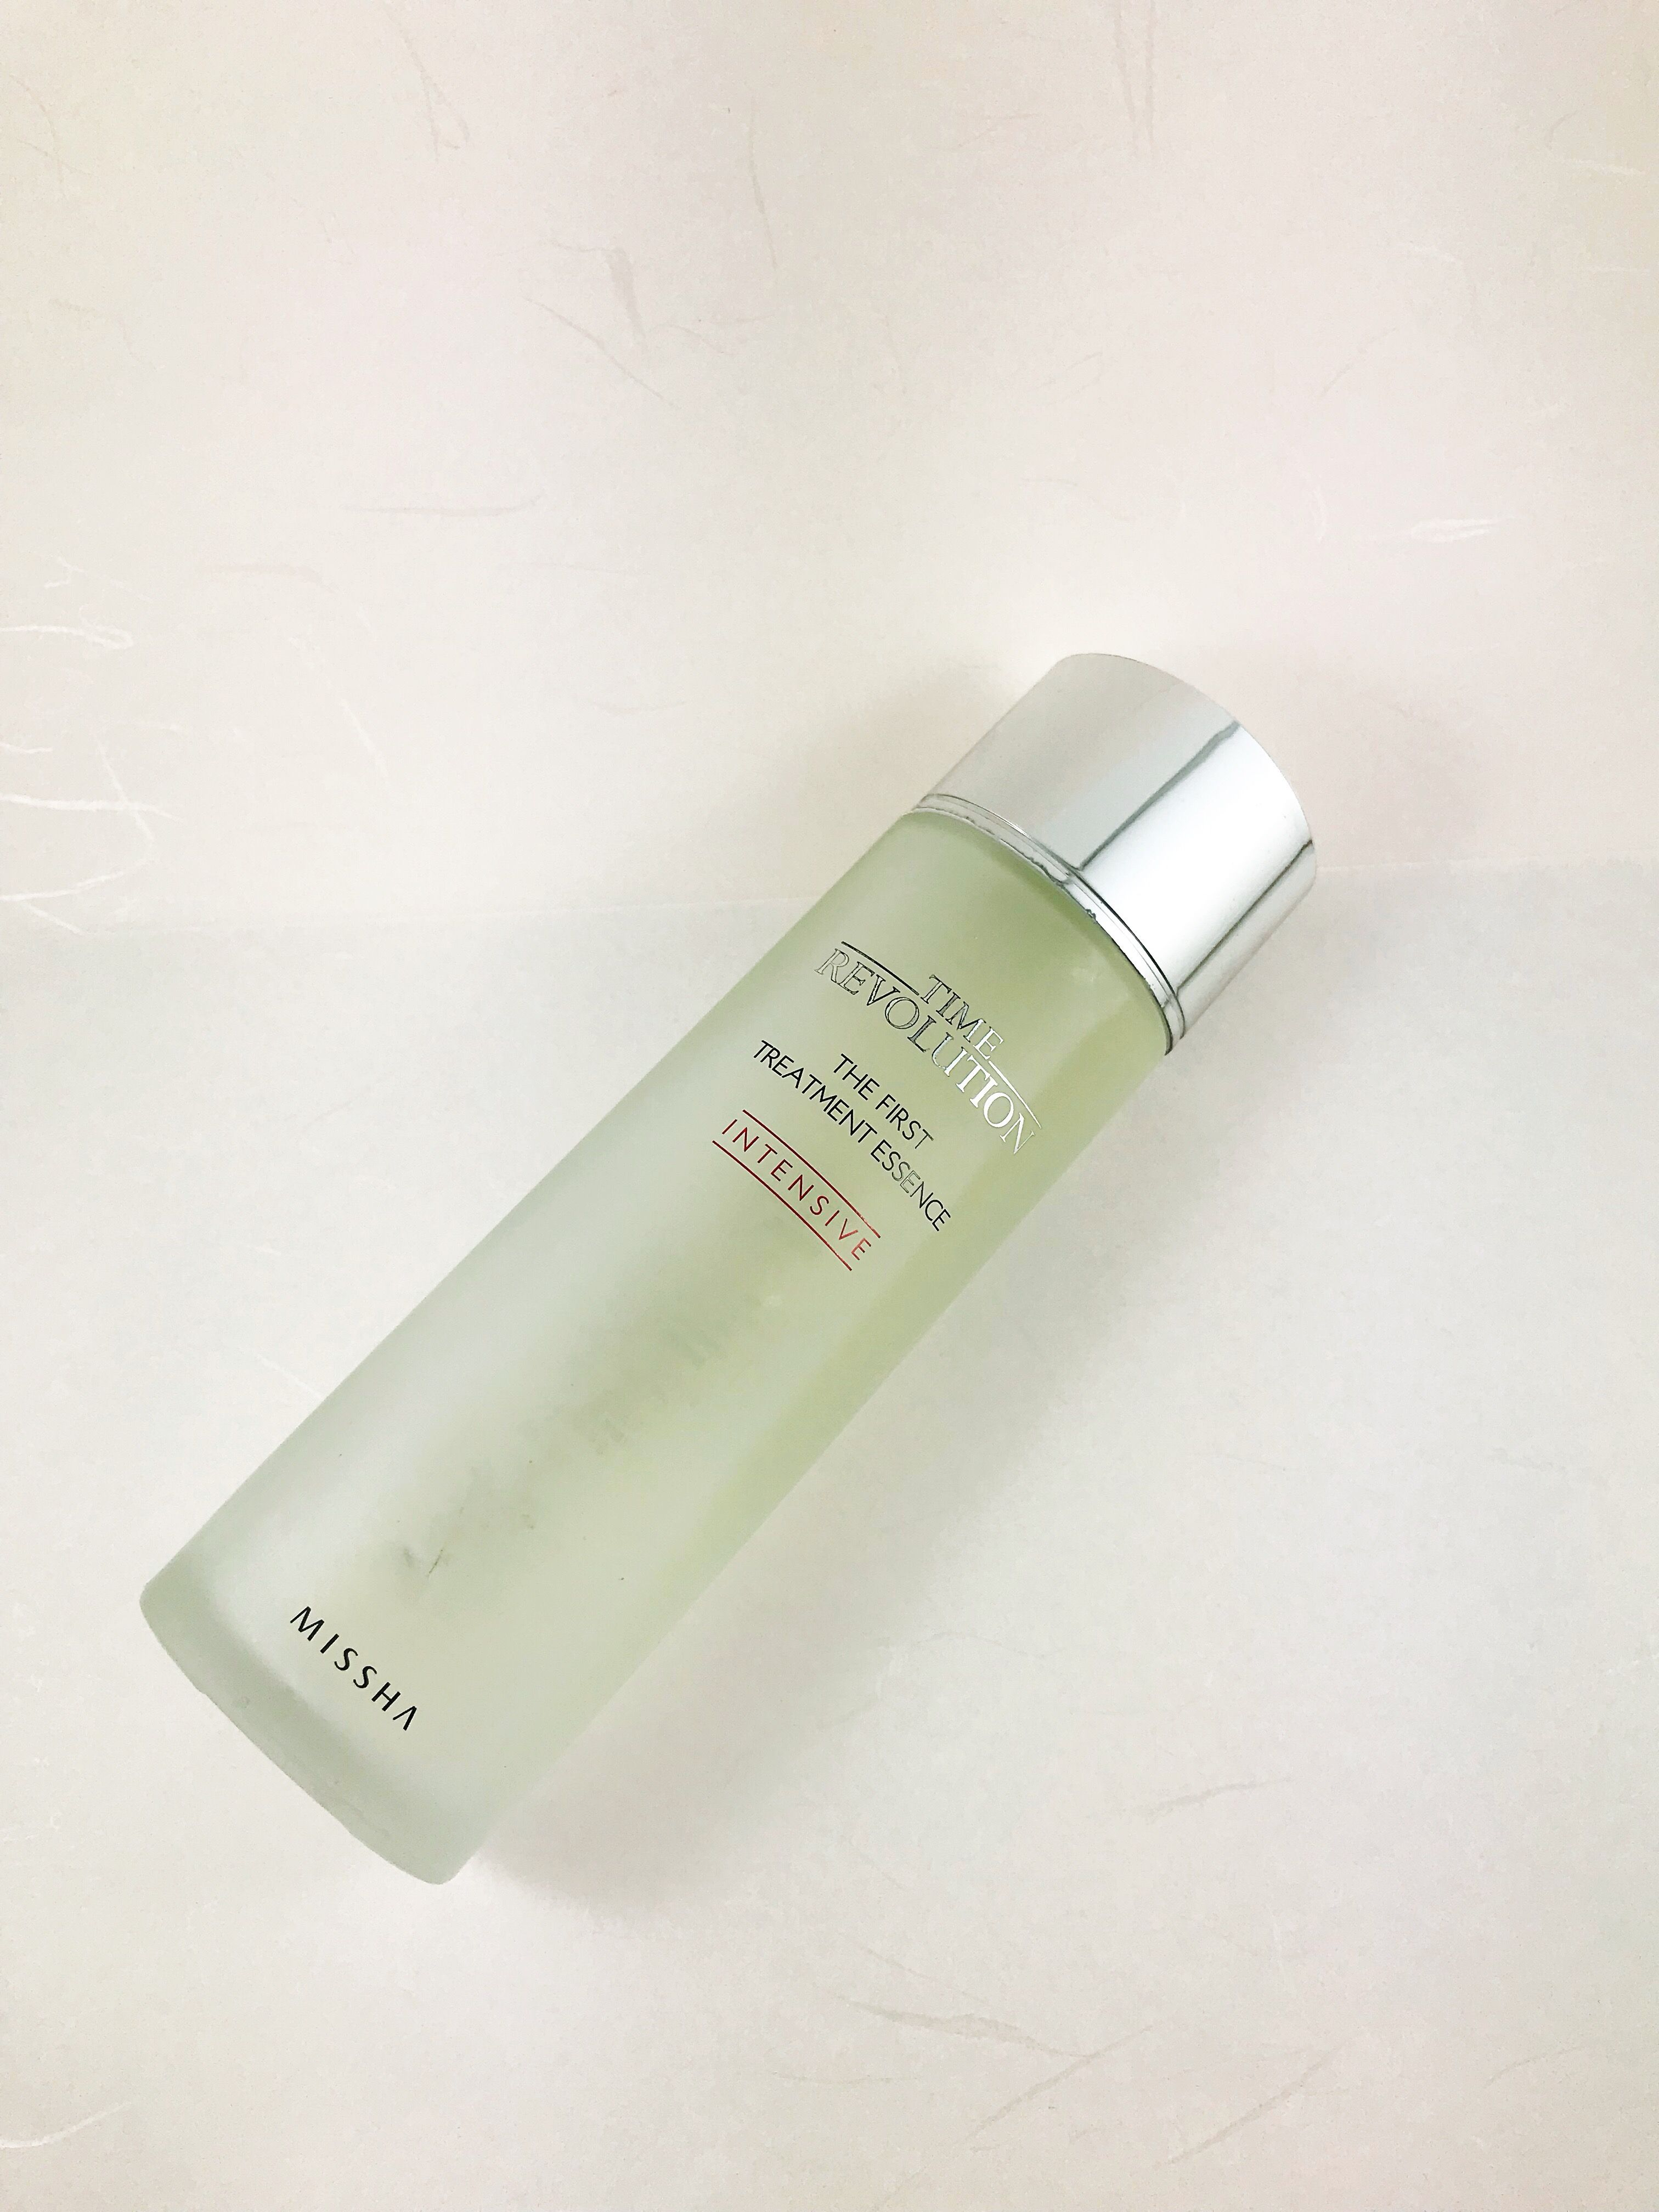 Missha Time Revolution First Treatment Essence Intensive Moist The Cult Korean Beauty Products